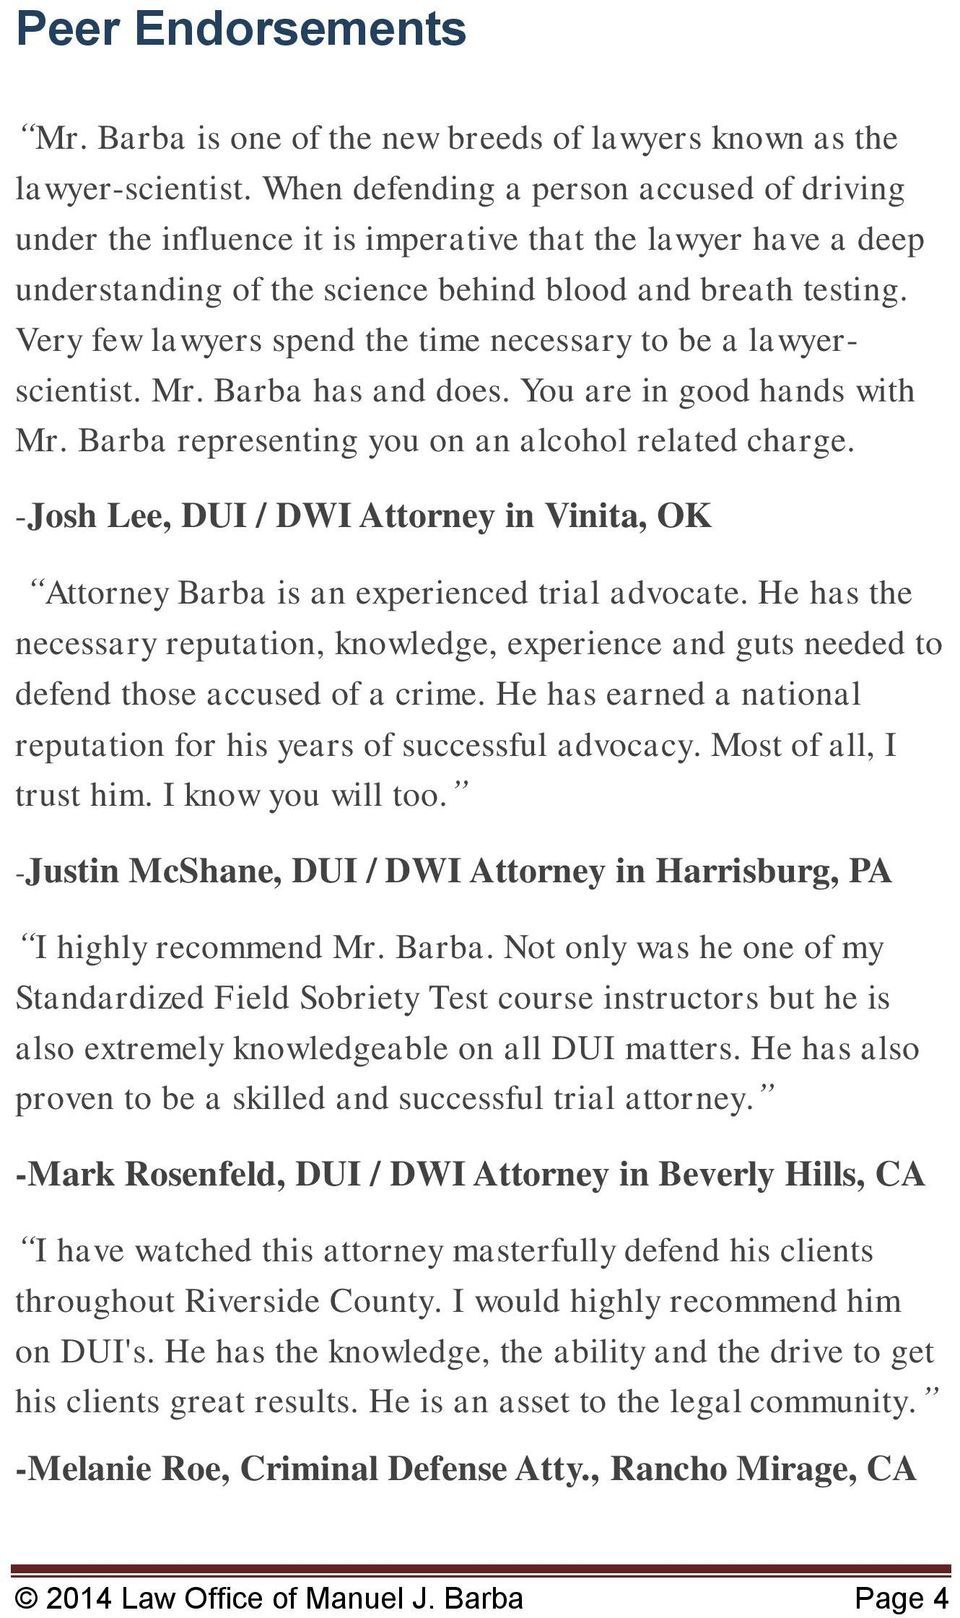 Very few lawyers spend the time necessary to be a lawyerscientist. Mr. Barba has and does. You are in good hands with Mr. Barba representing you on an alcohol related charge.